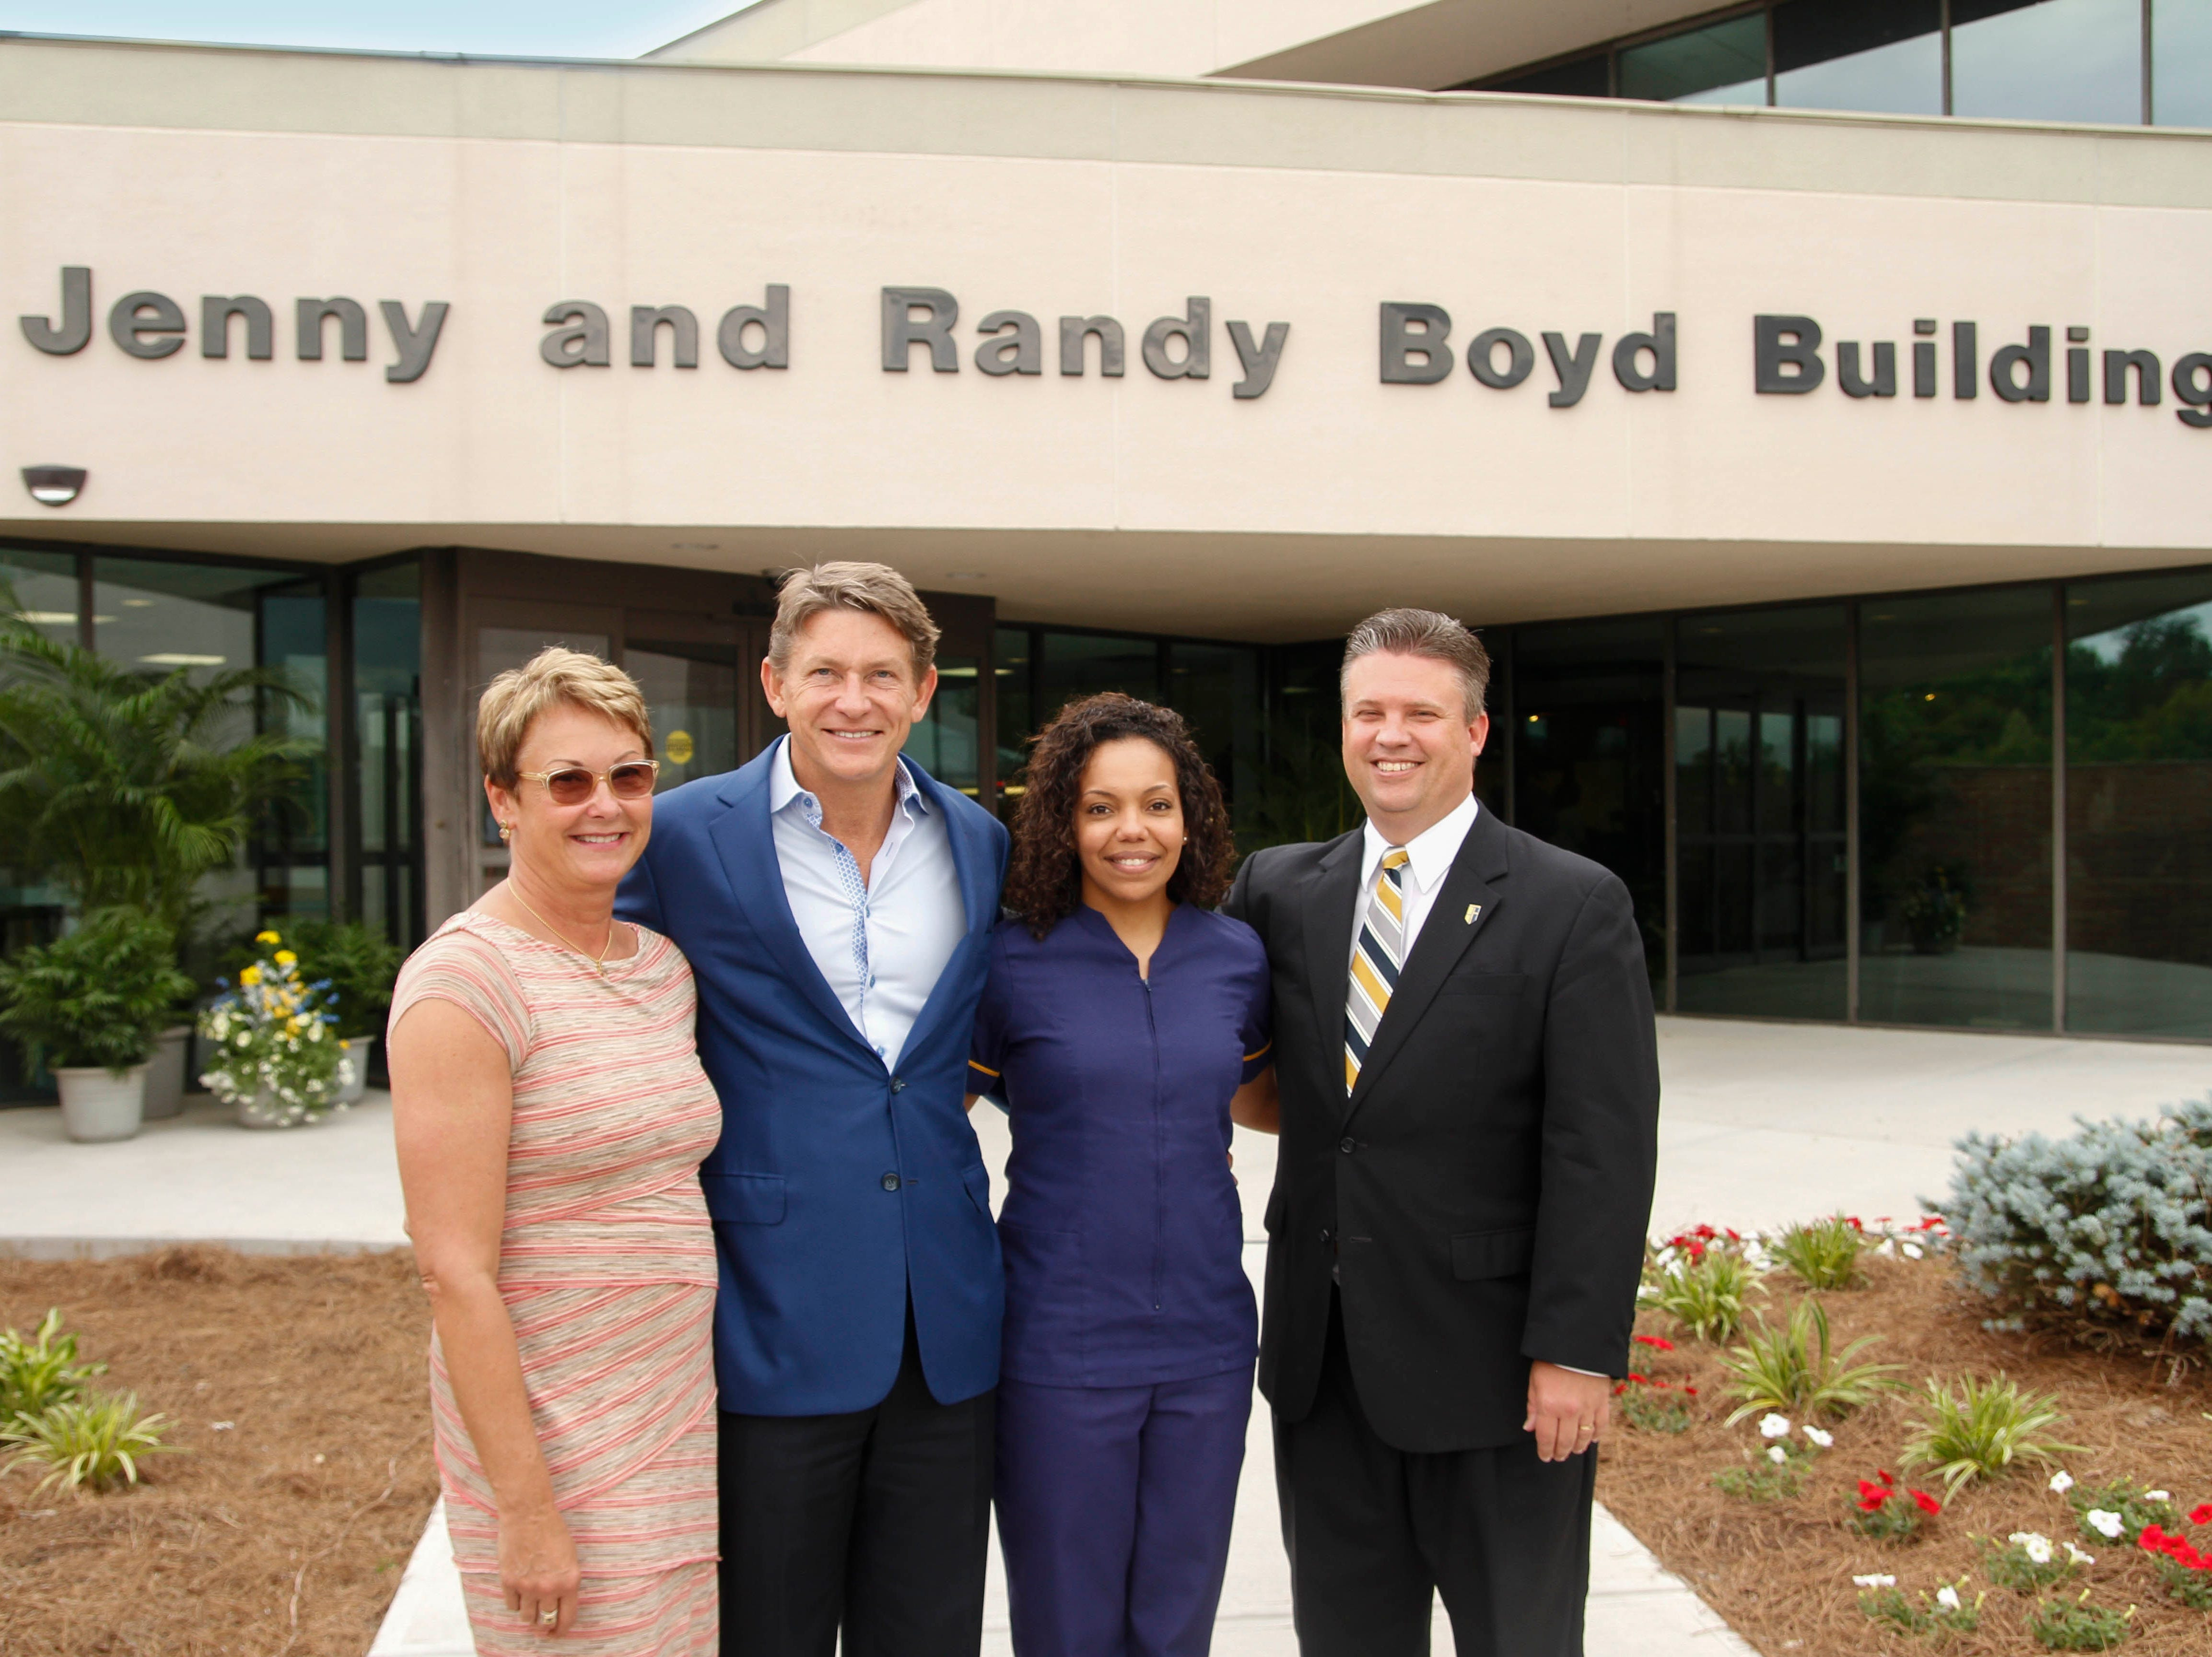 Pellissippi State Community College dedicated the Jenny and Randy Boyd building at its Strawberry Plains Campus. From left are Jenny and Randy Boyd, Pellissippi State nursing student Chisa Huffman and Pellissippi State President L. Anthony Wise Jr.